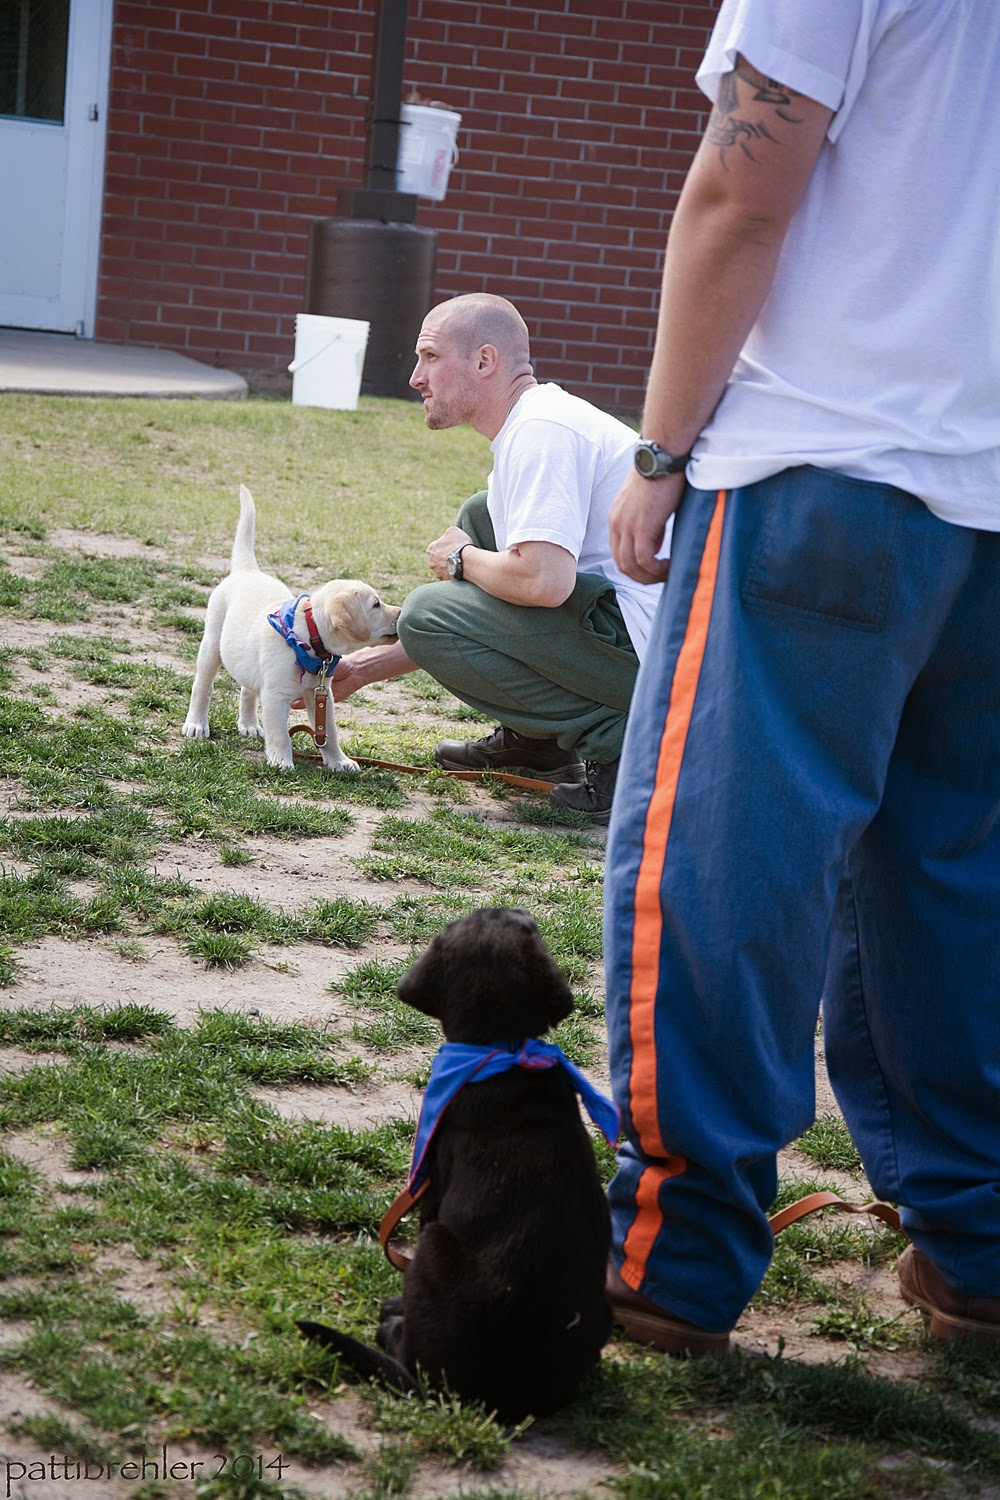 A man dressed in the blue prison pants and a white t-shirt is standing half out of view on the right side of the picture; sitting at his left side is a small black lab with his back to the camera. The puppy is looking up at the man. Beyond them is another man squatting down, wearing green sweatpants and a white t-shirt, he is facing to the left and there is a small yellow lab puppy standing in front of him looking at him. There is a brick building in the background.